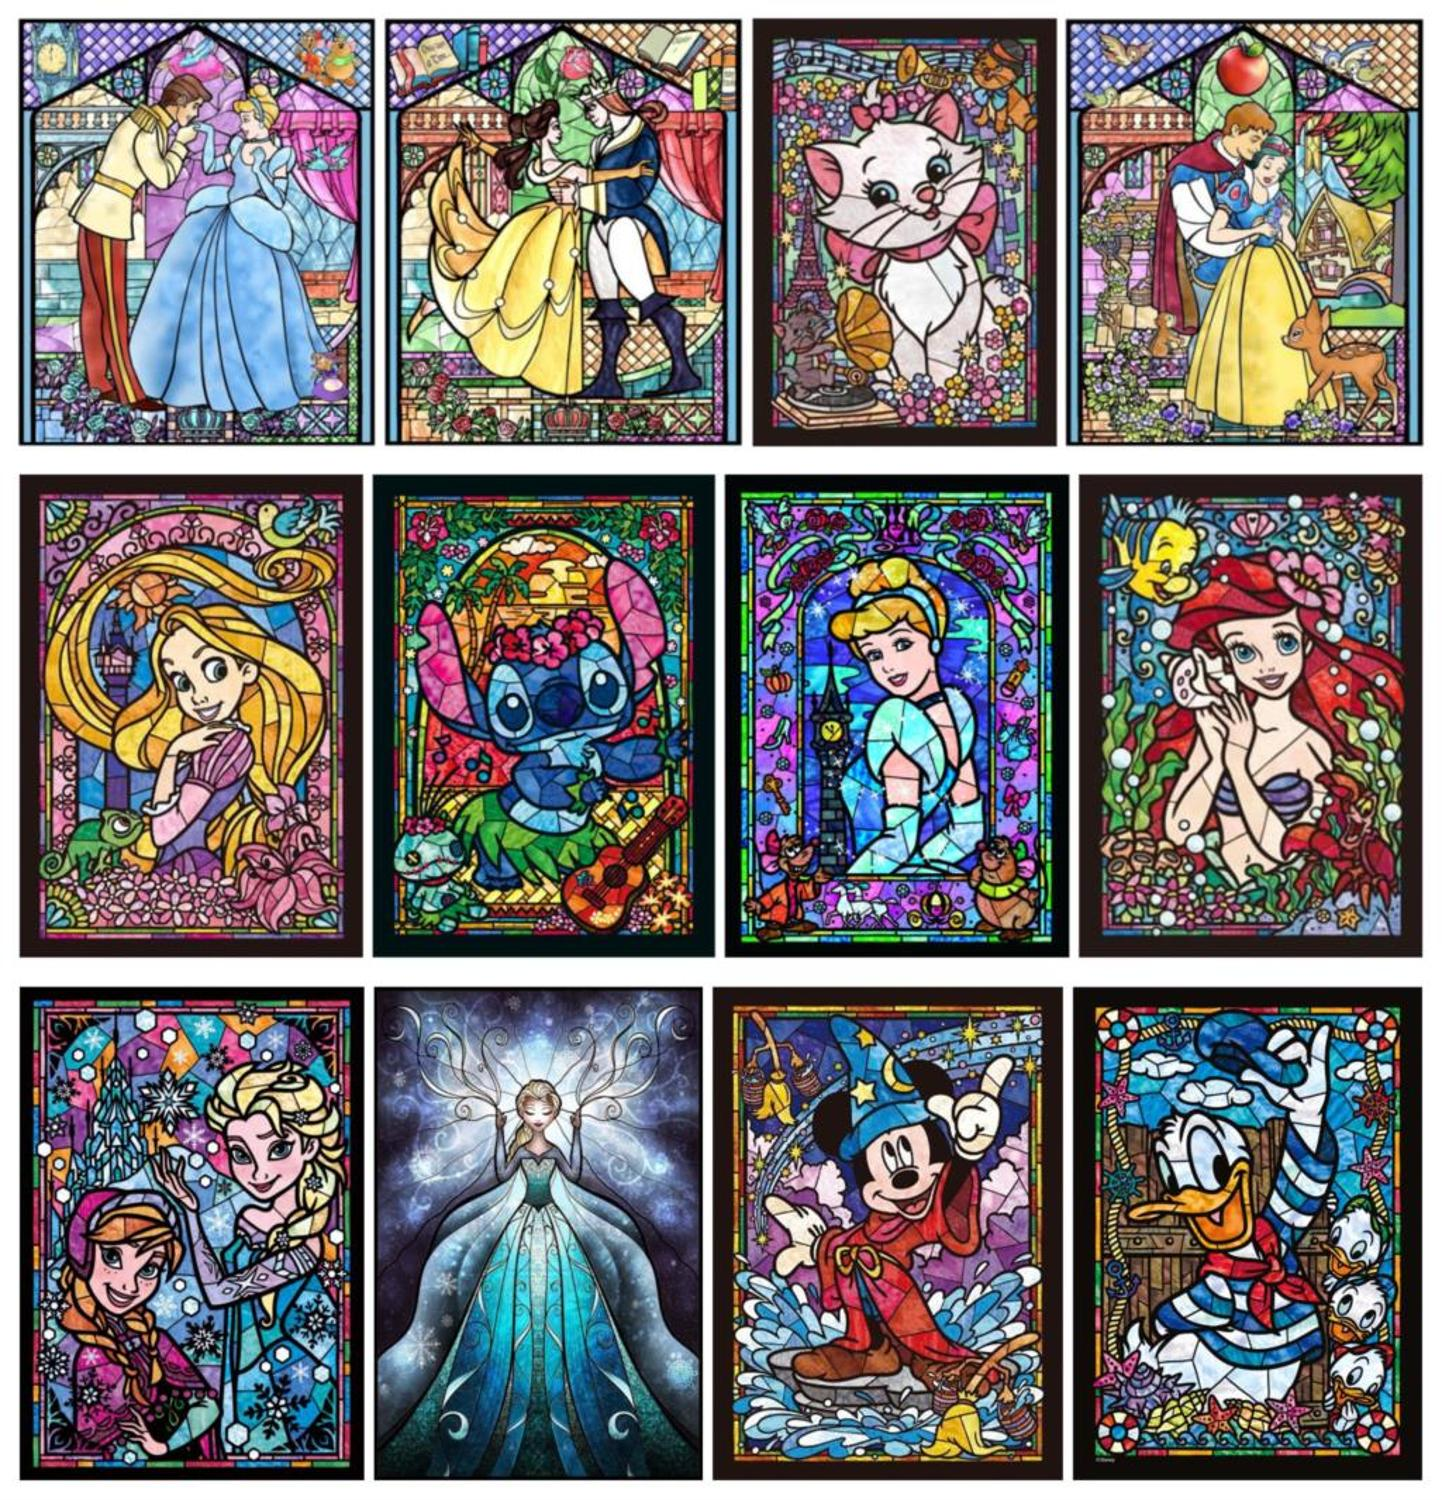 DIY 5D Diamond Painting Kits for Adults Full Drill Cartoons Rhinestone Embroidery Paintings by Diamond Colorful Cross Stitch Arts Crafts for Home Wall Decor Cartoon Ladies(30X40cm)